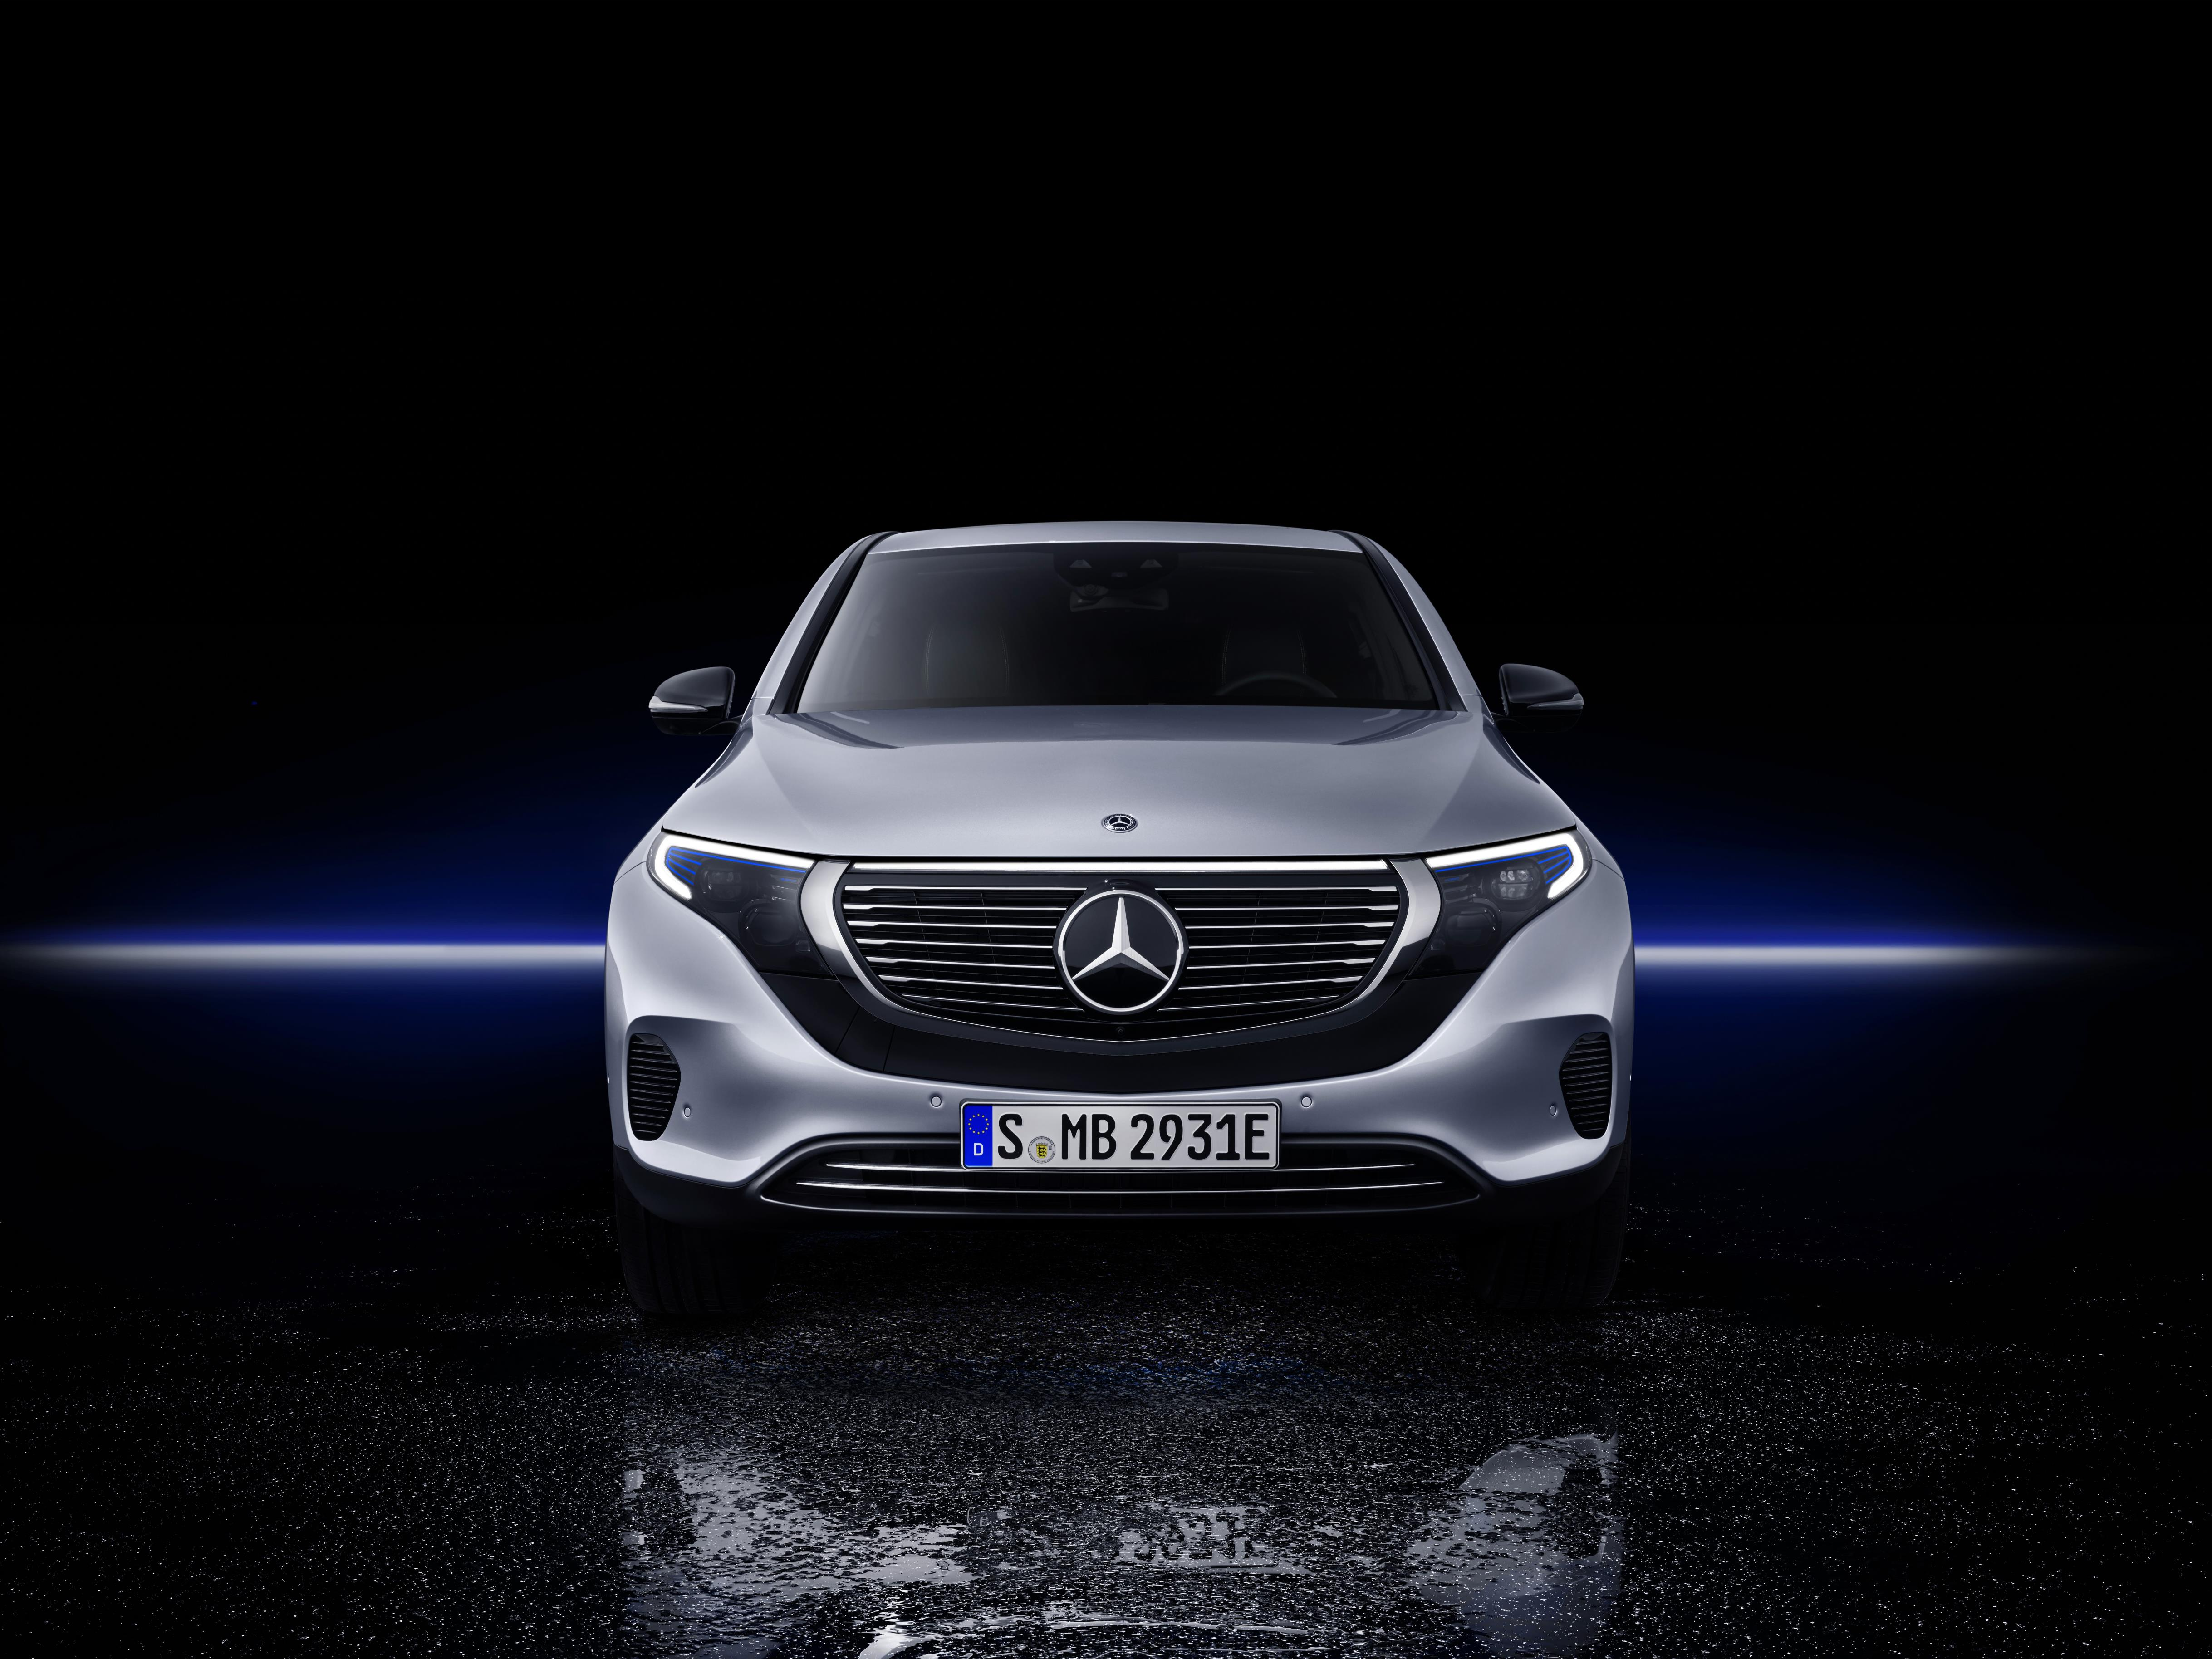 New Electric Mercedes Benz Eqc Suv Unveiled Today In